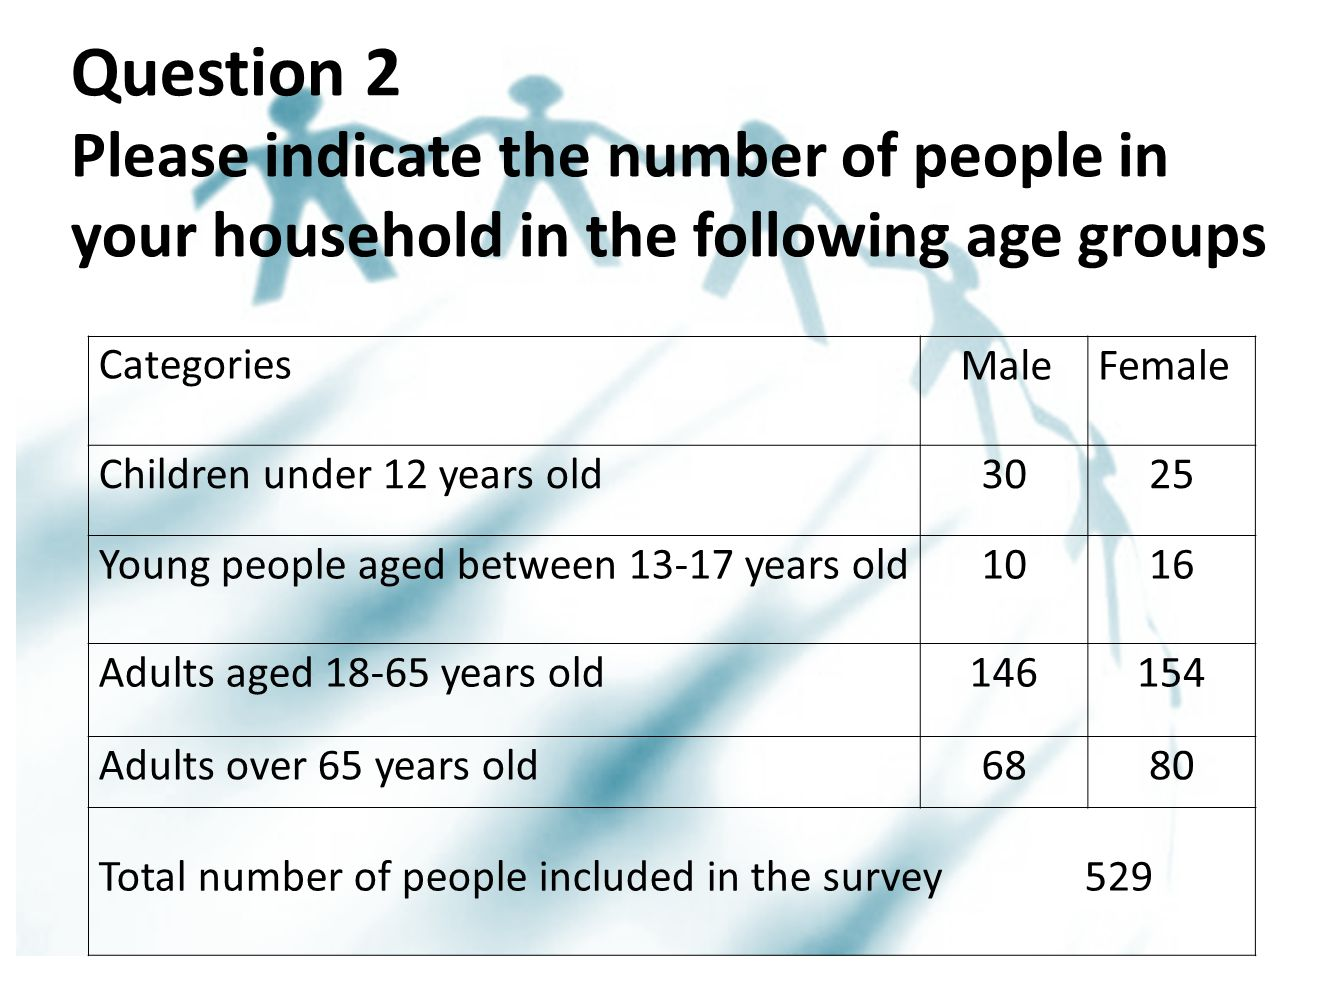 Categories MaleFemale Children under 12 years old3025 Young people aged between 13-17 years old1016 Adults aged 18-65 years old146154 Adults over 65 years old6880 Total number of people included in the survey 529 Question 2 Please indicate the number of people in your household in the following age groups